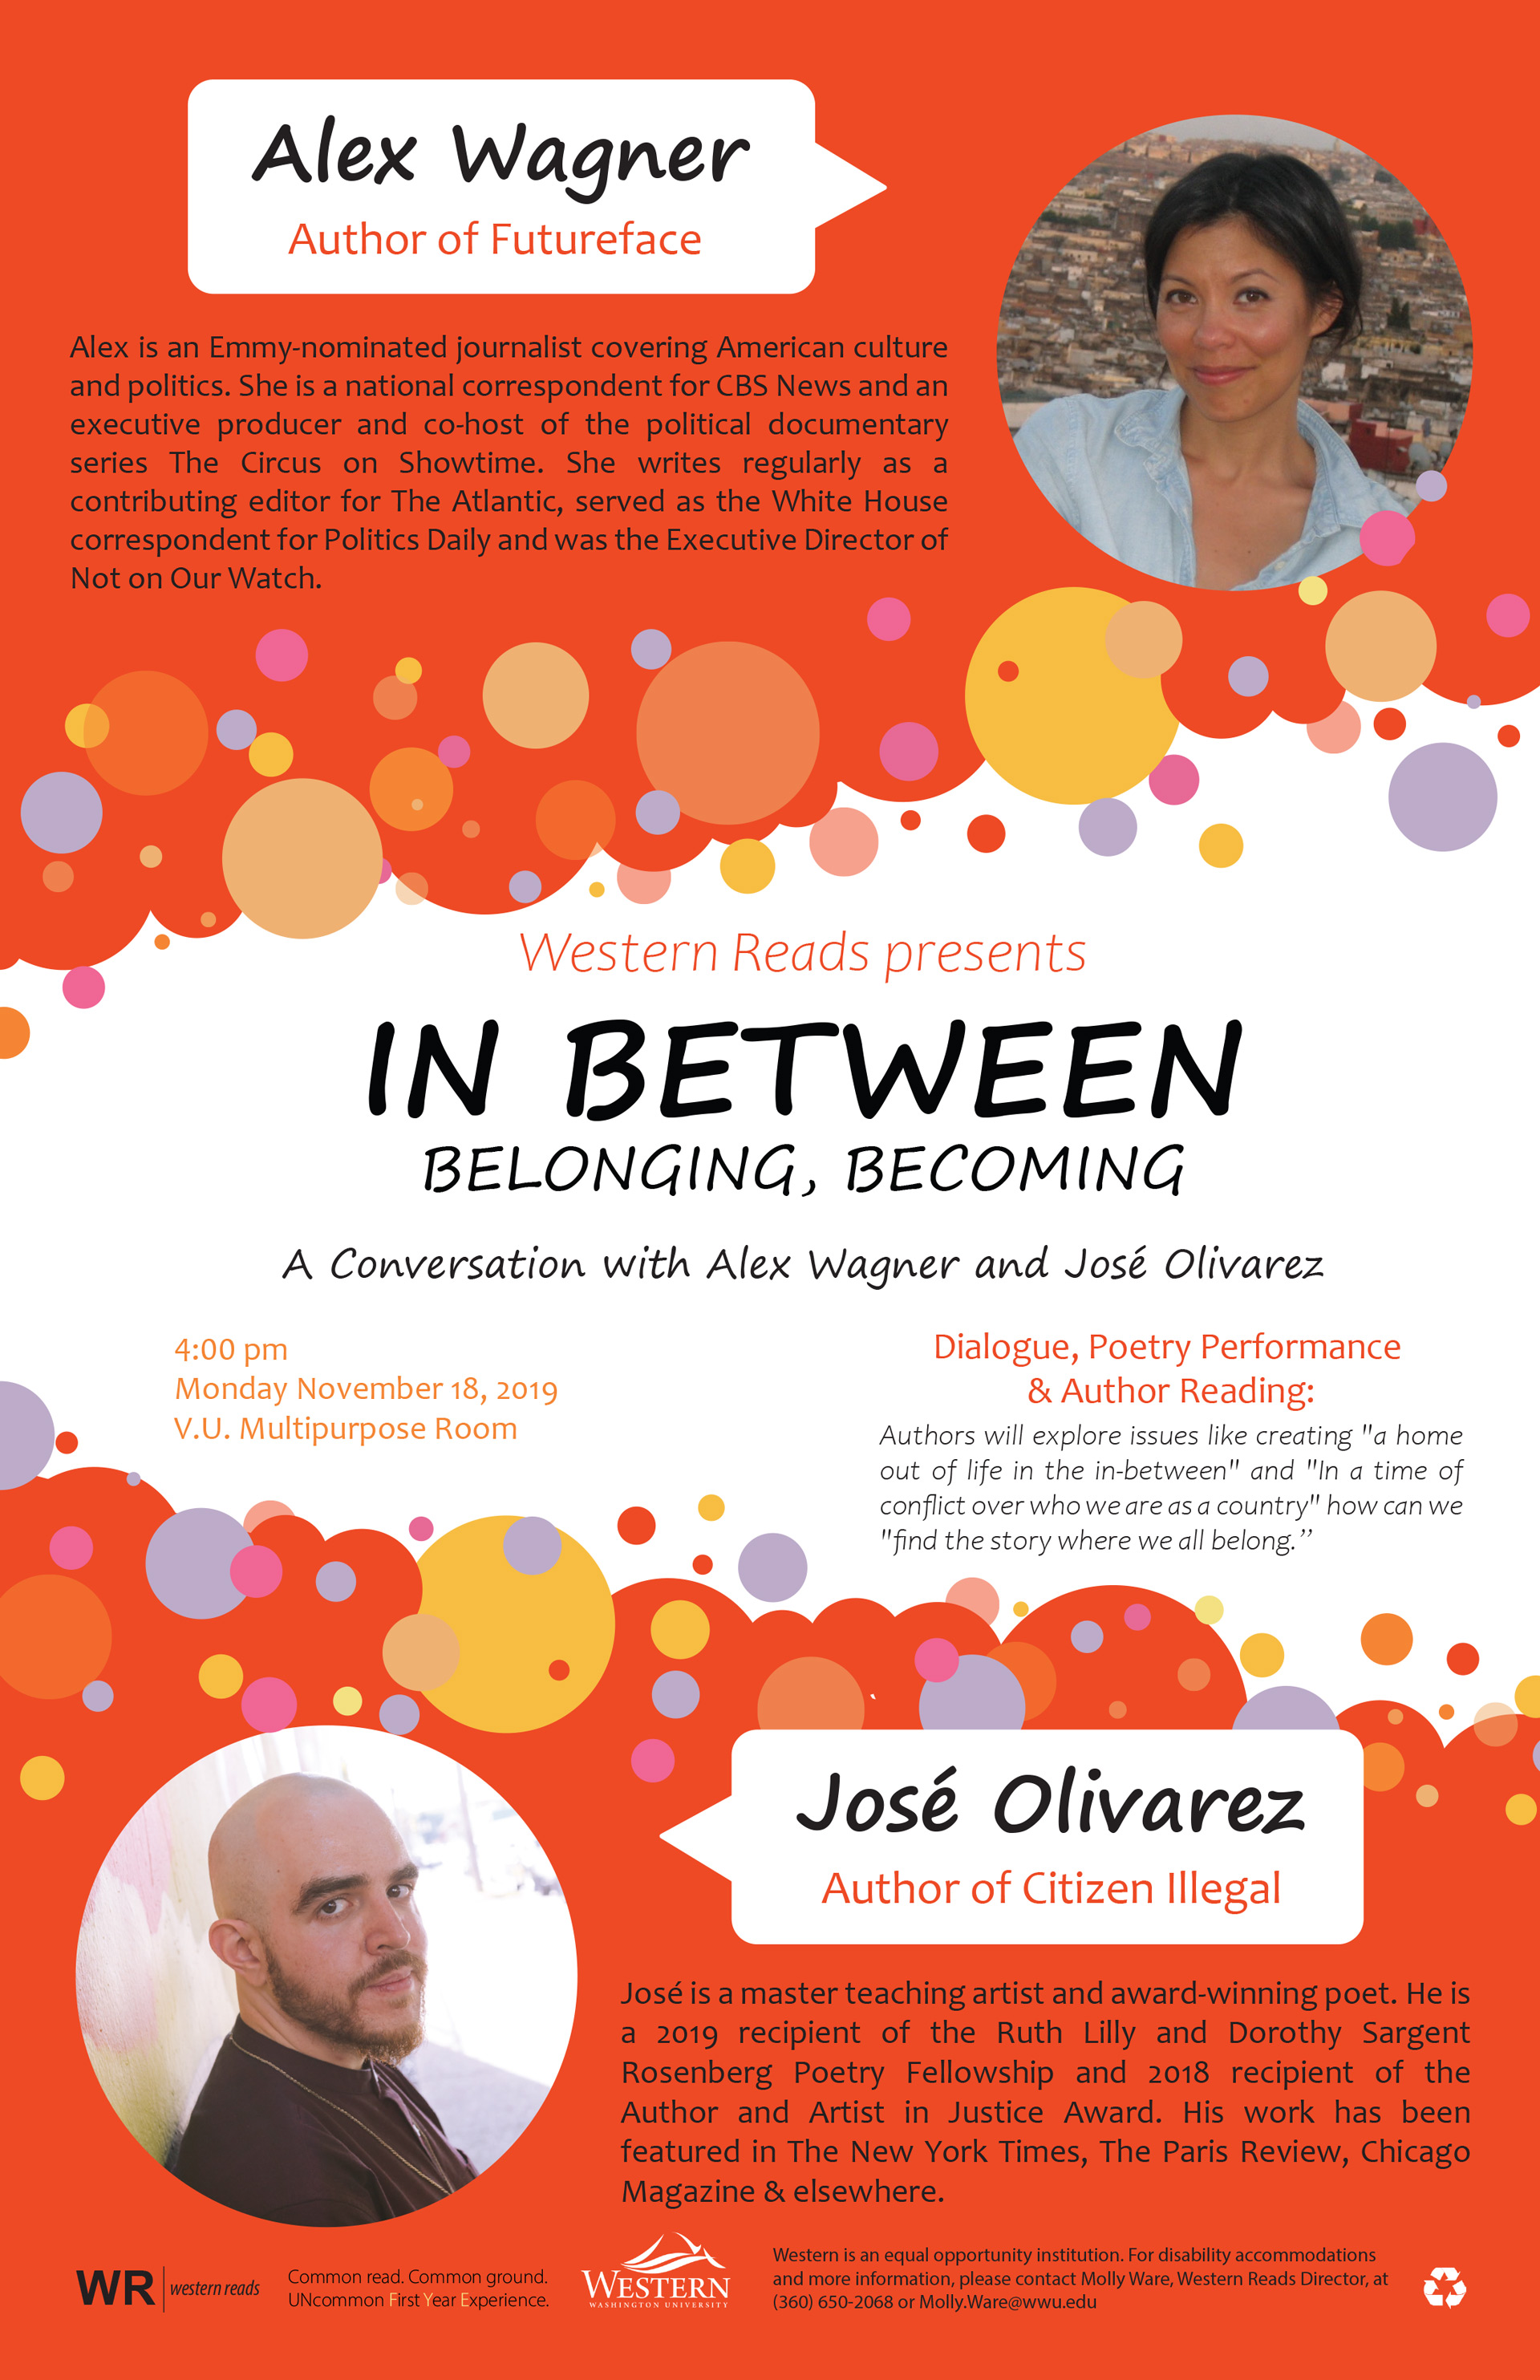 Western Reads: In Between, Belonging, Becoming Nov 18th